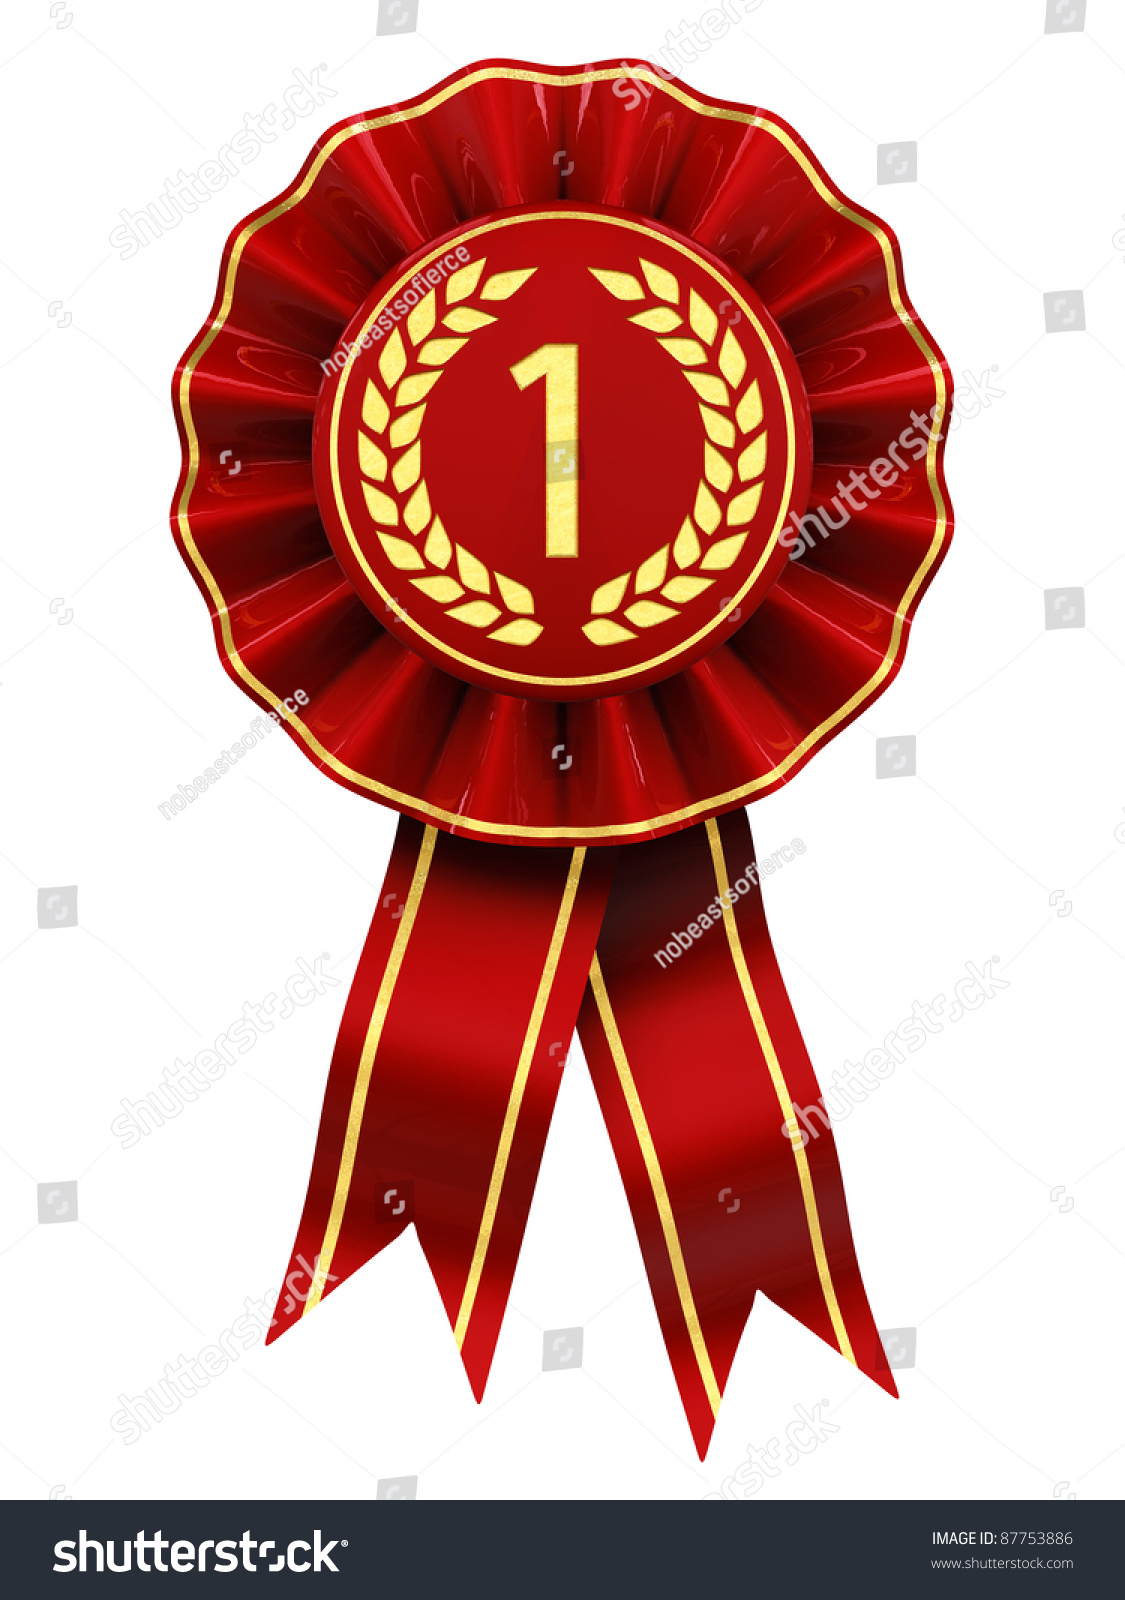 first place winner red gold rosette stock illustration 87753886